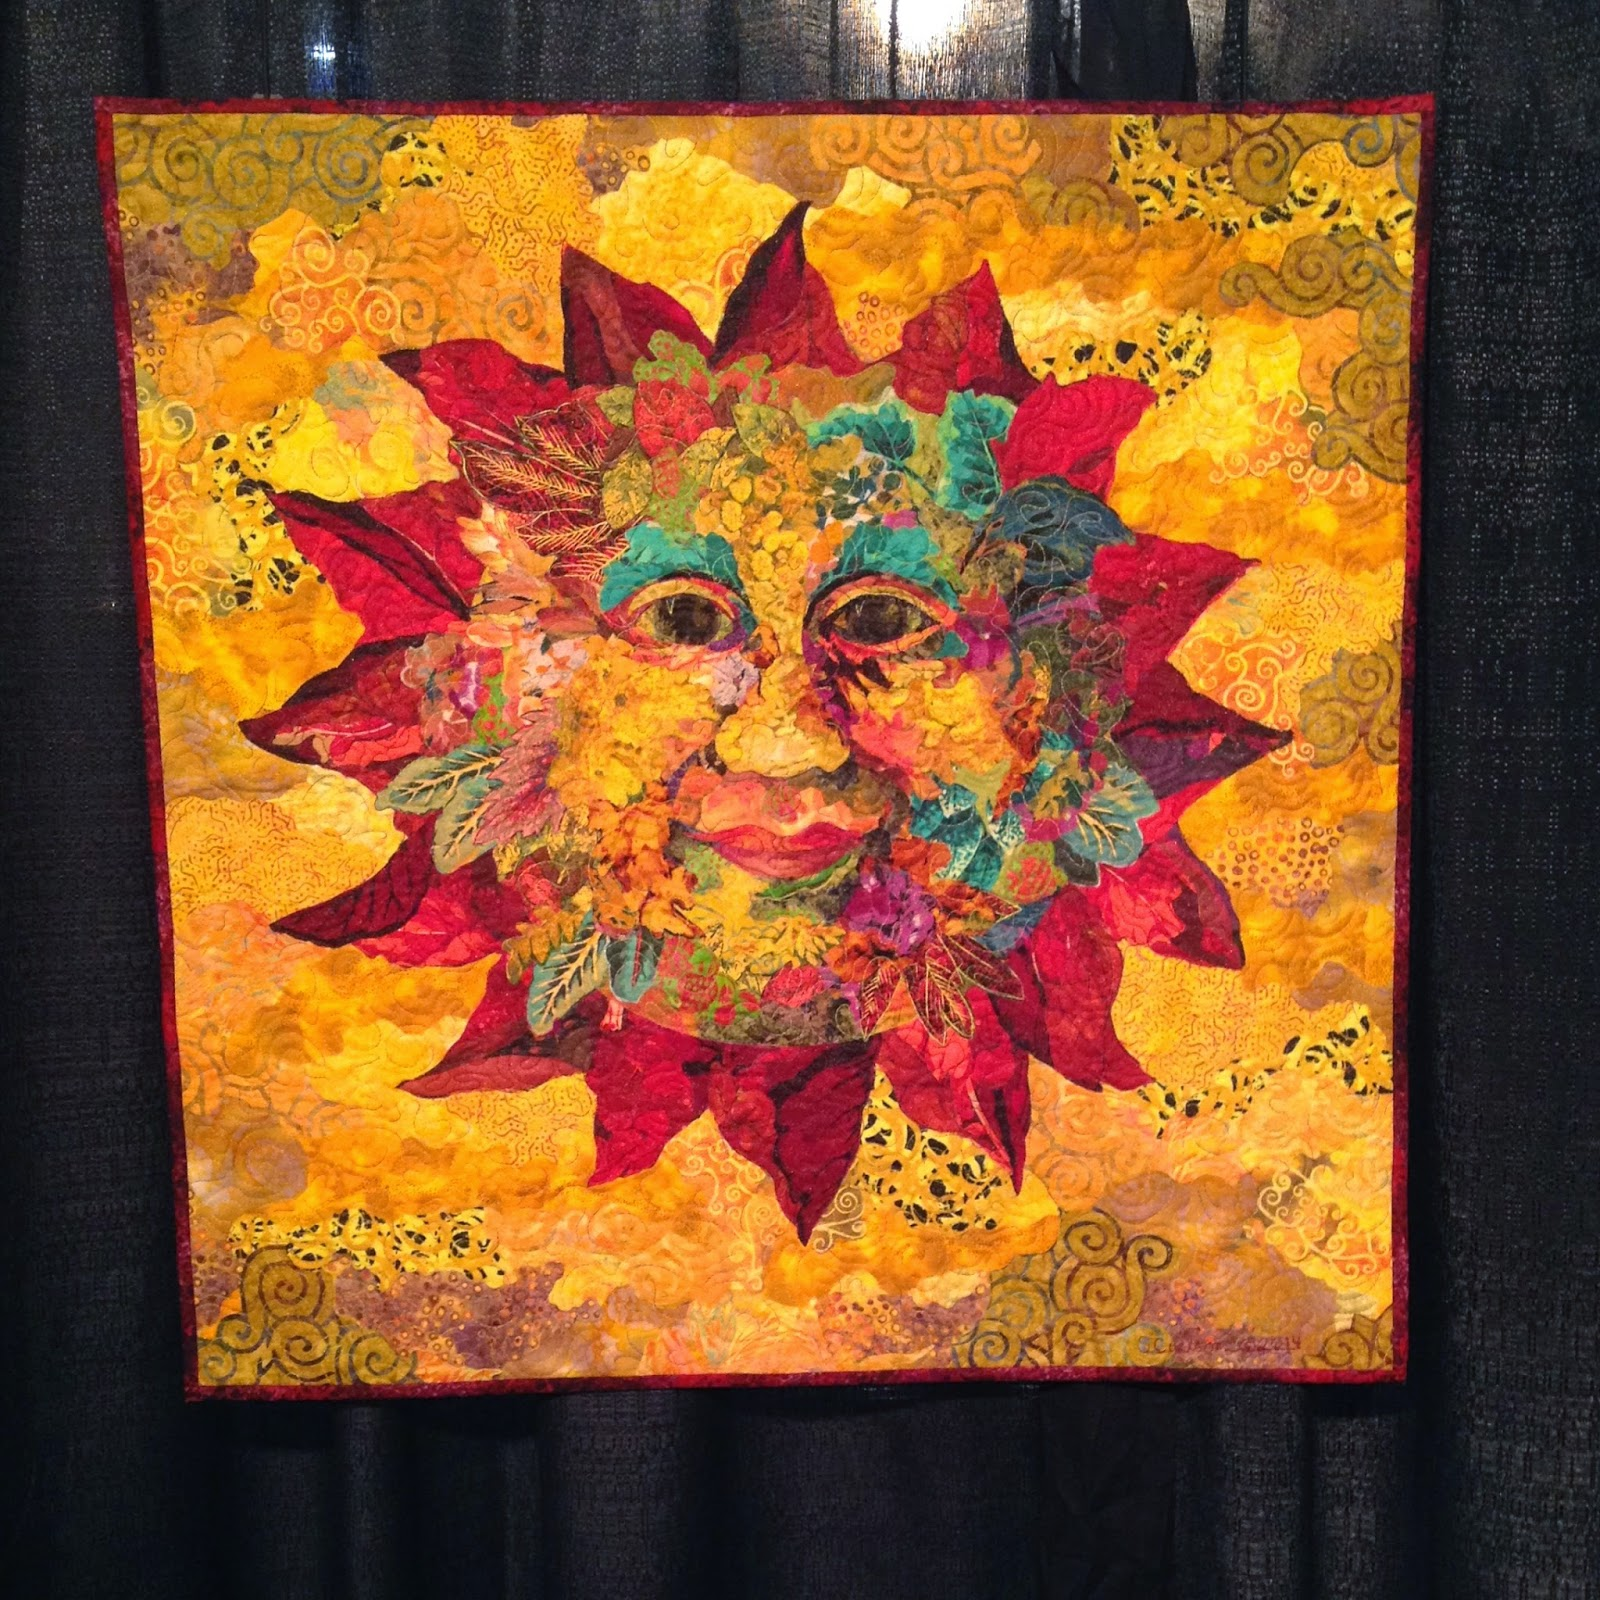 Visit International Quilt Market 2014 with us! | Totally Crazy ... : serendipity quilts susan carlson - Adamdwight.com